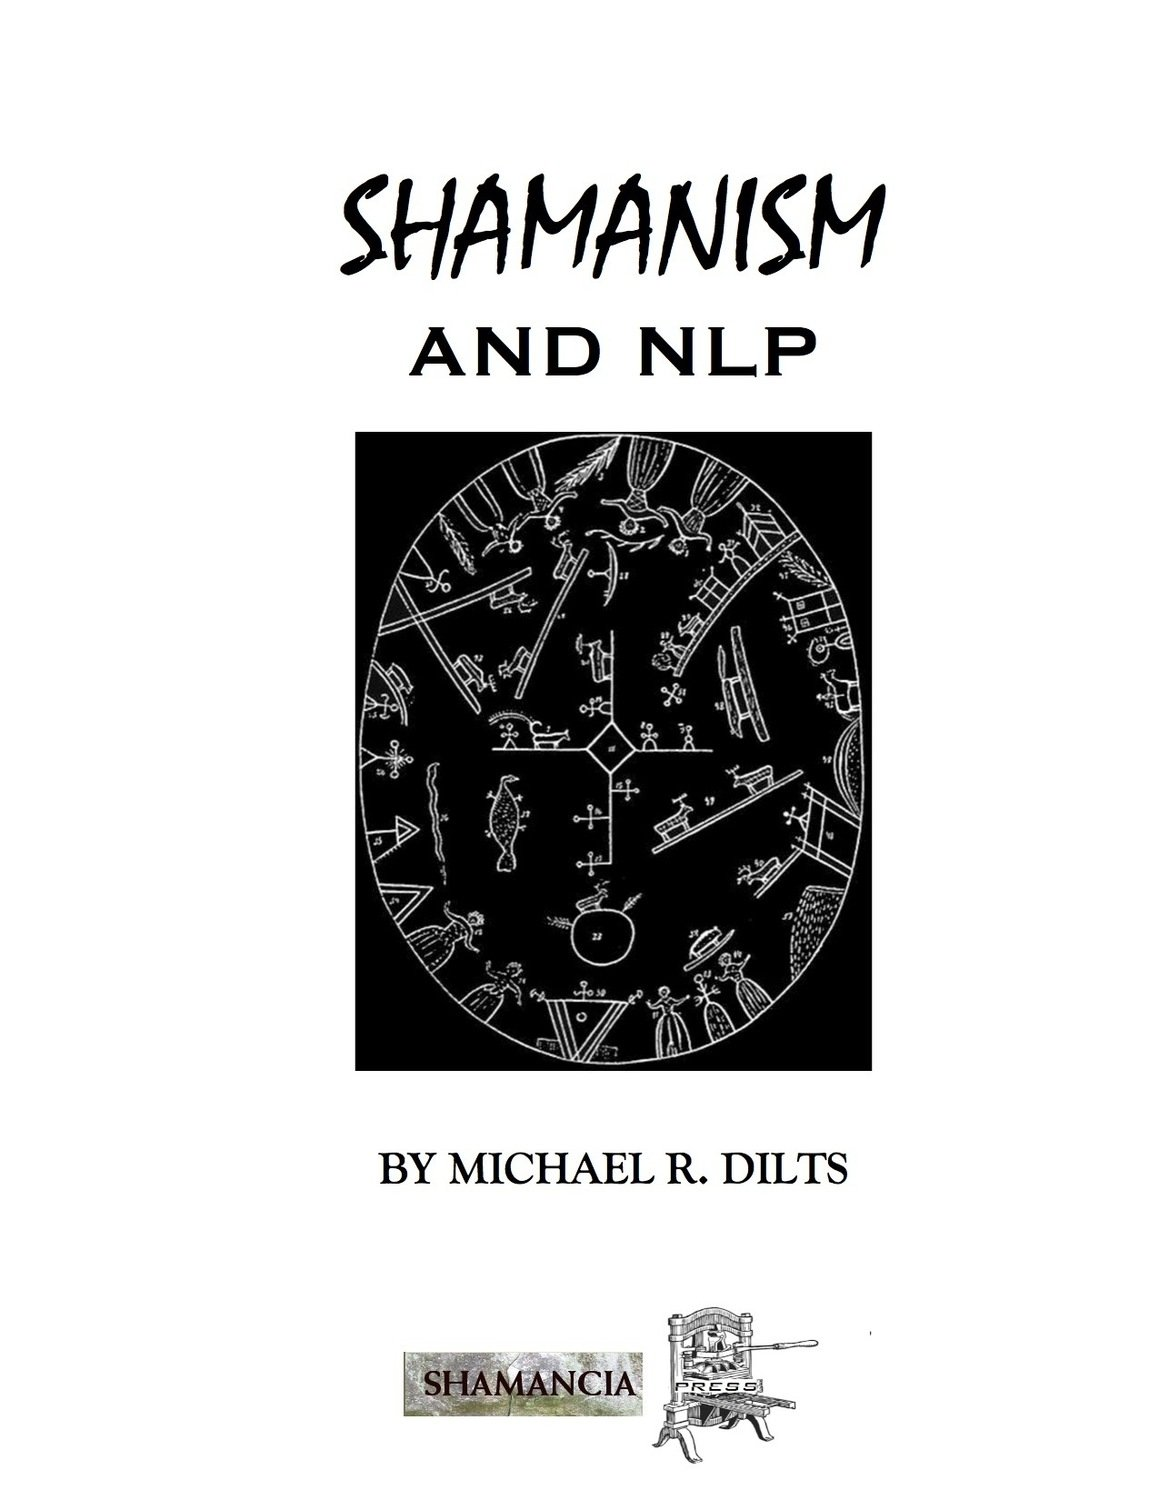 Shamanism and NLP by Michael R. Dilts [Booklet]